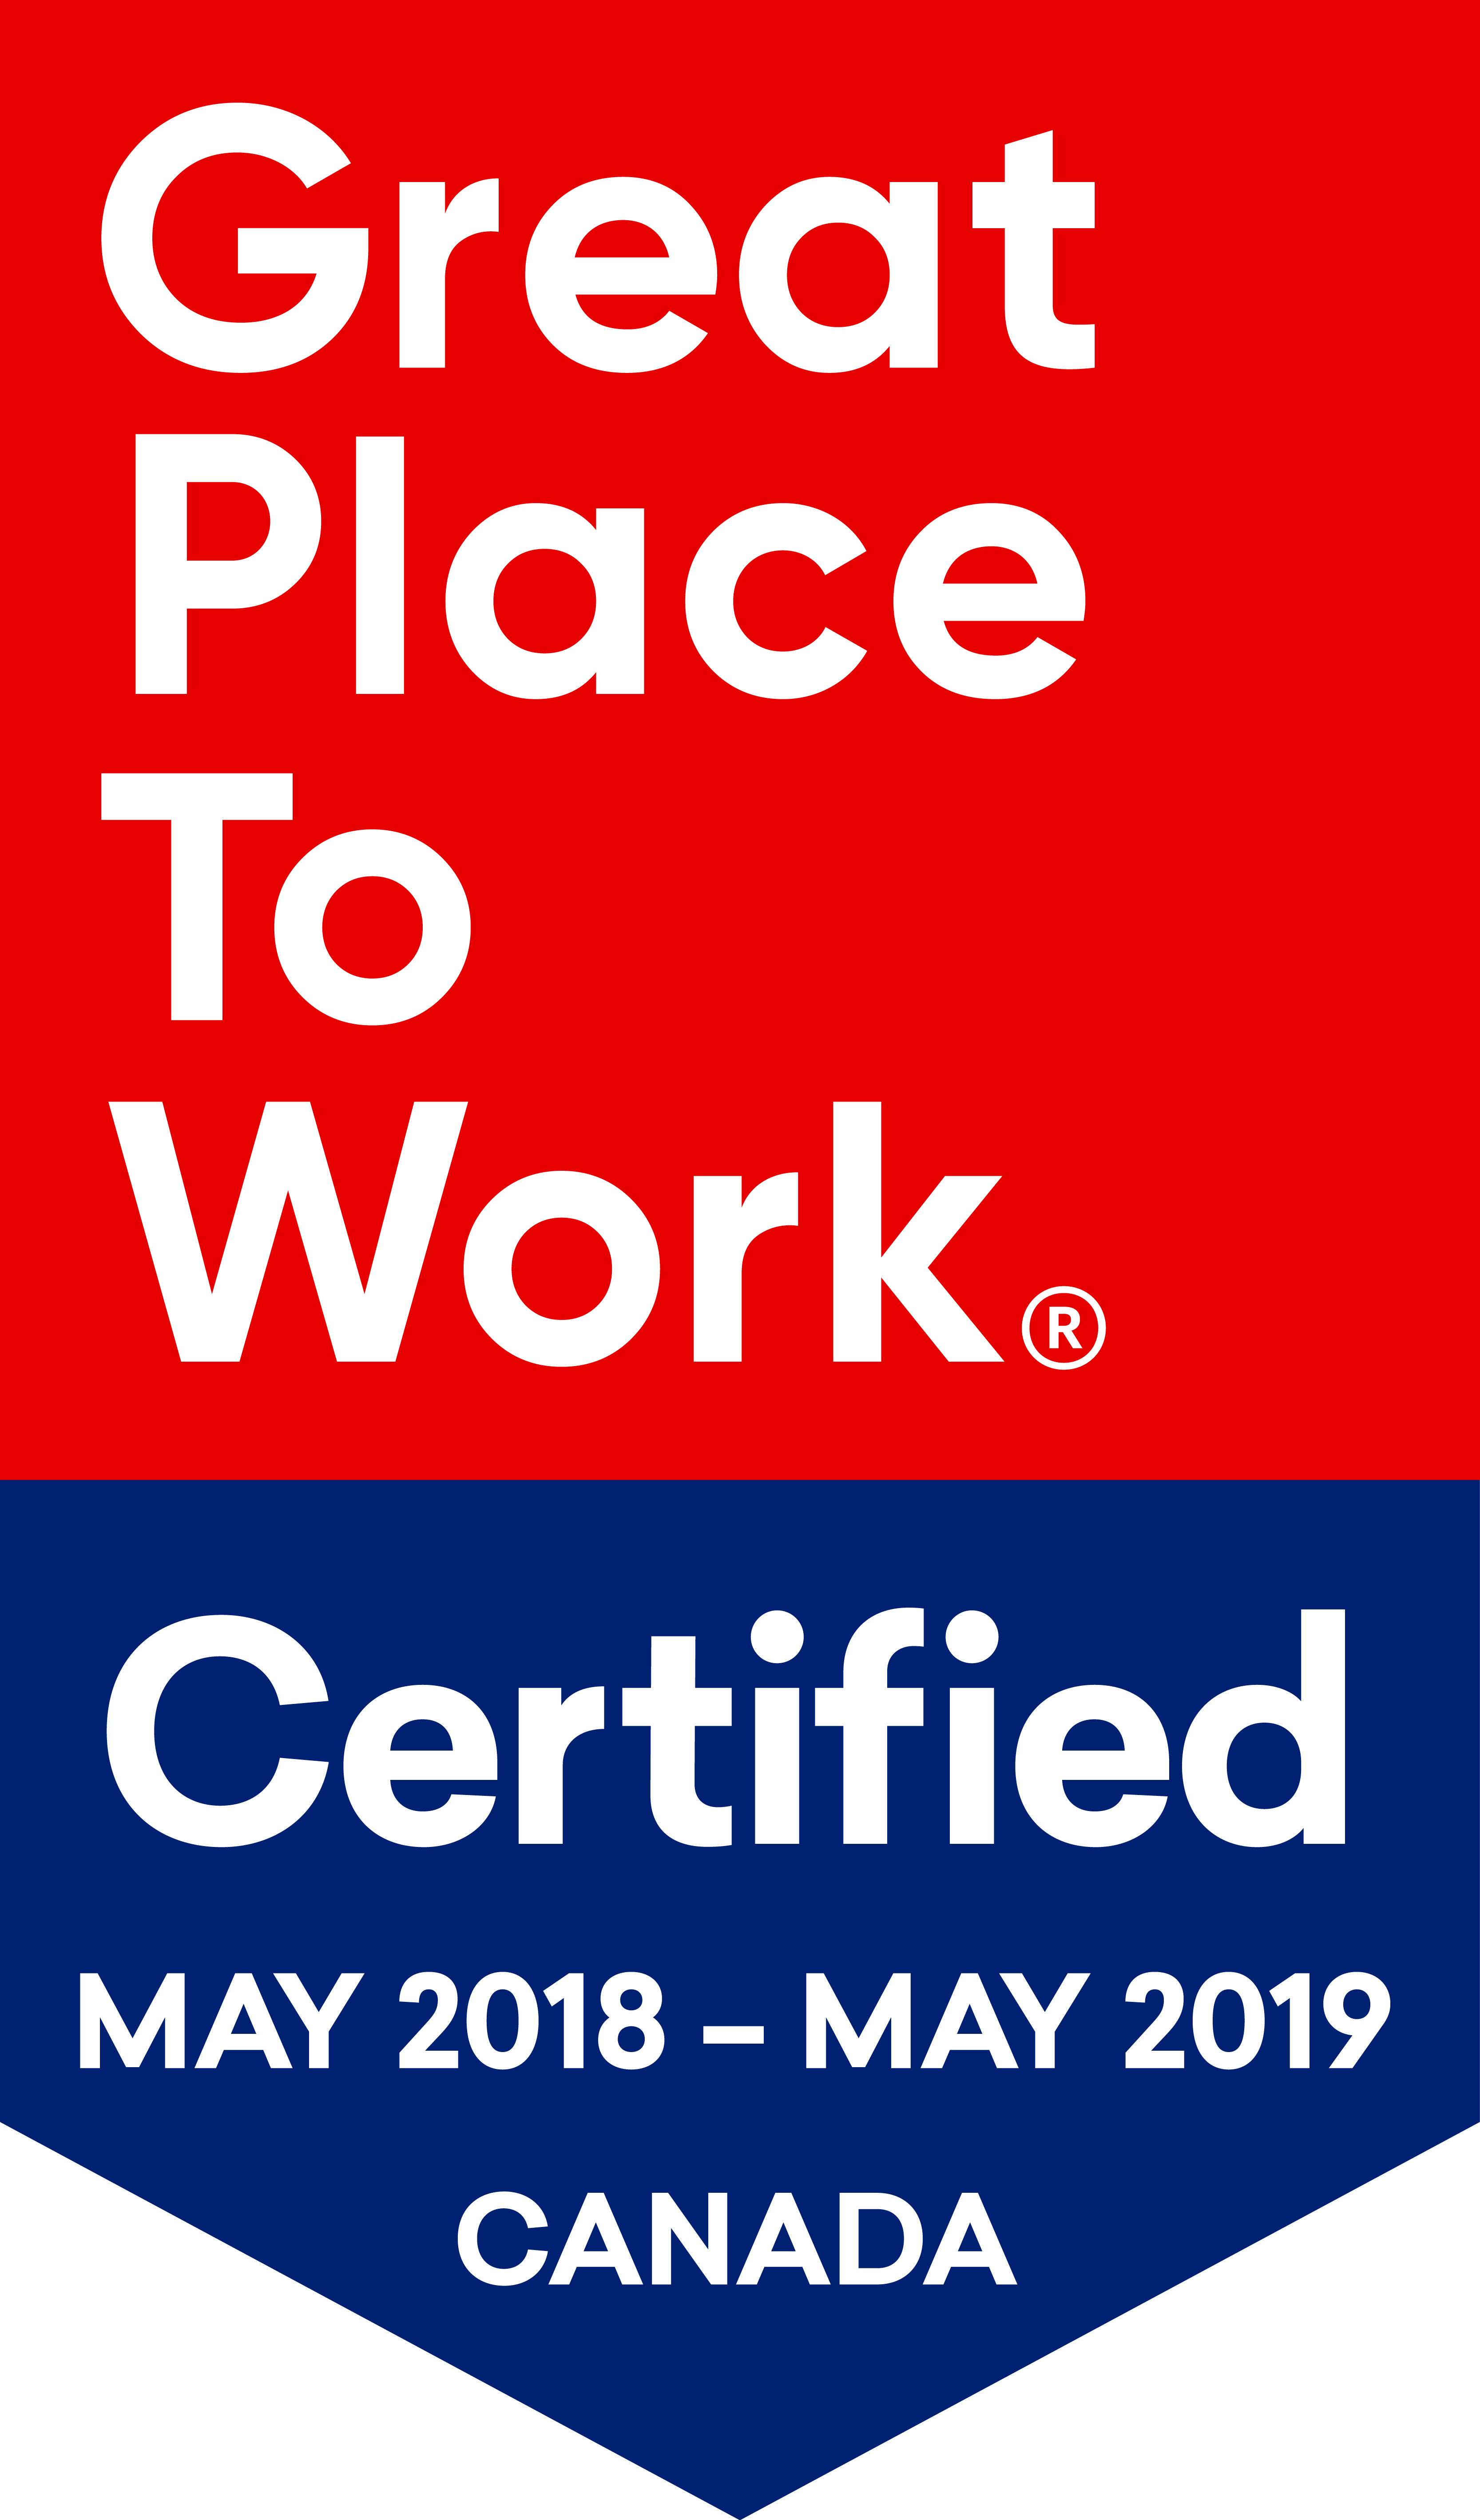 May 2018 Certification Toolkit Great Place To Work Canada